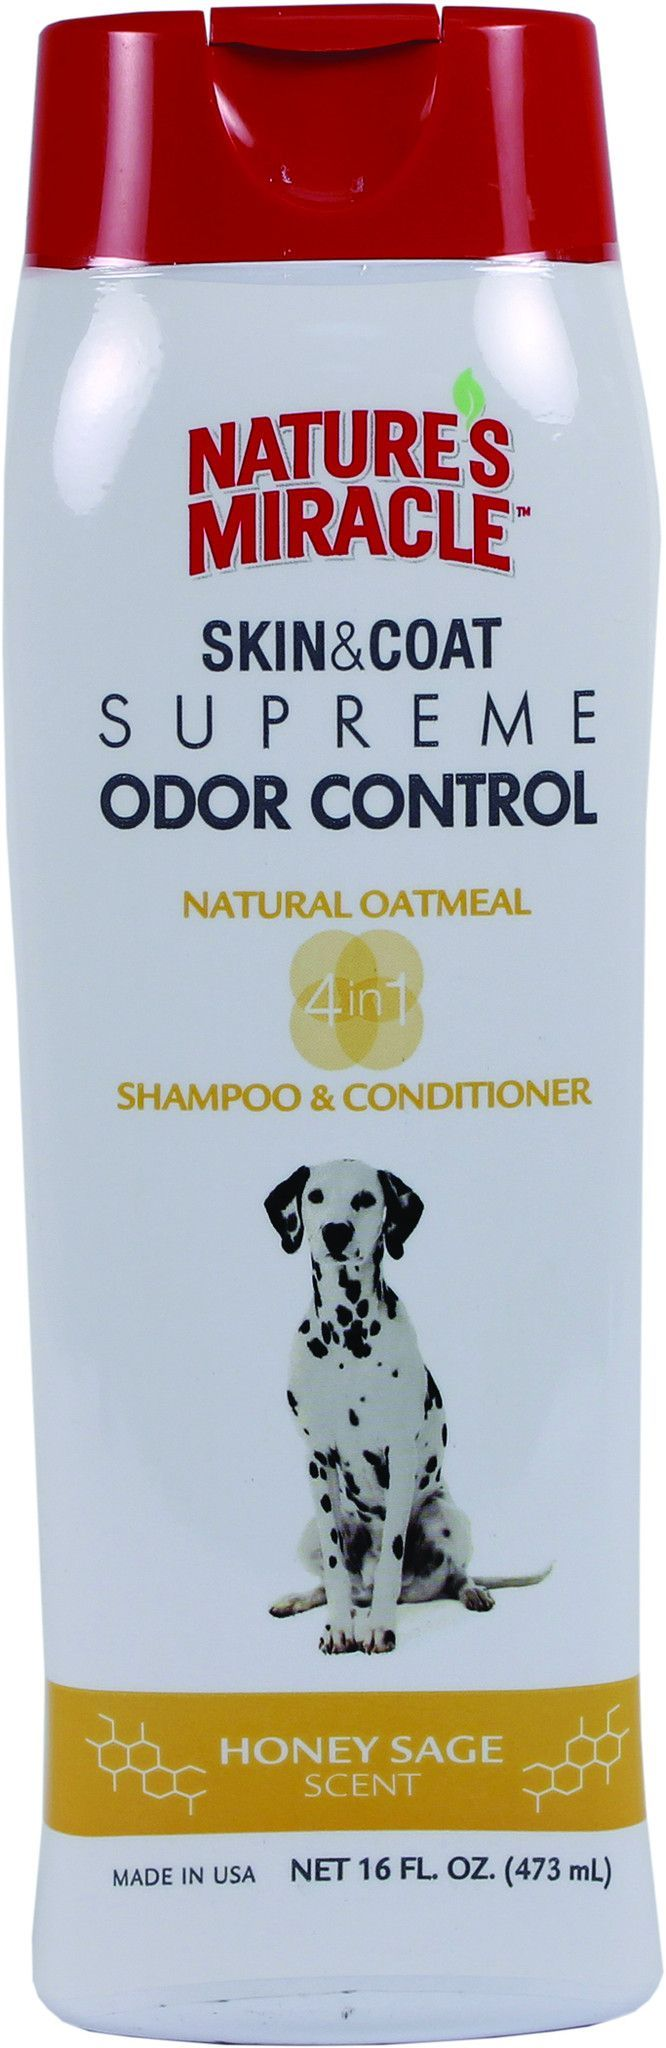 NATURES MIRACLE SUPREME ODOR CONTROL OATMEAL